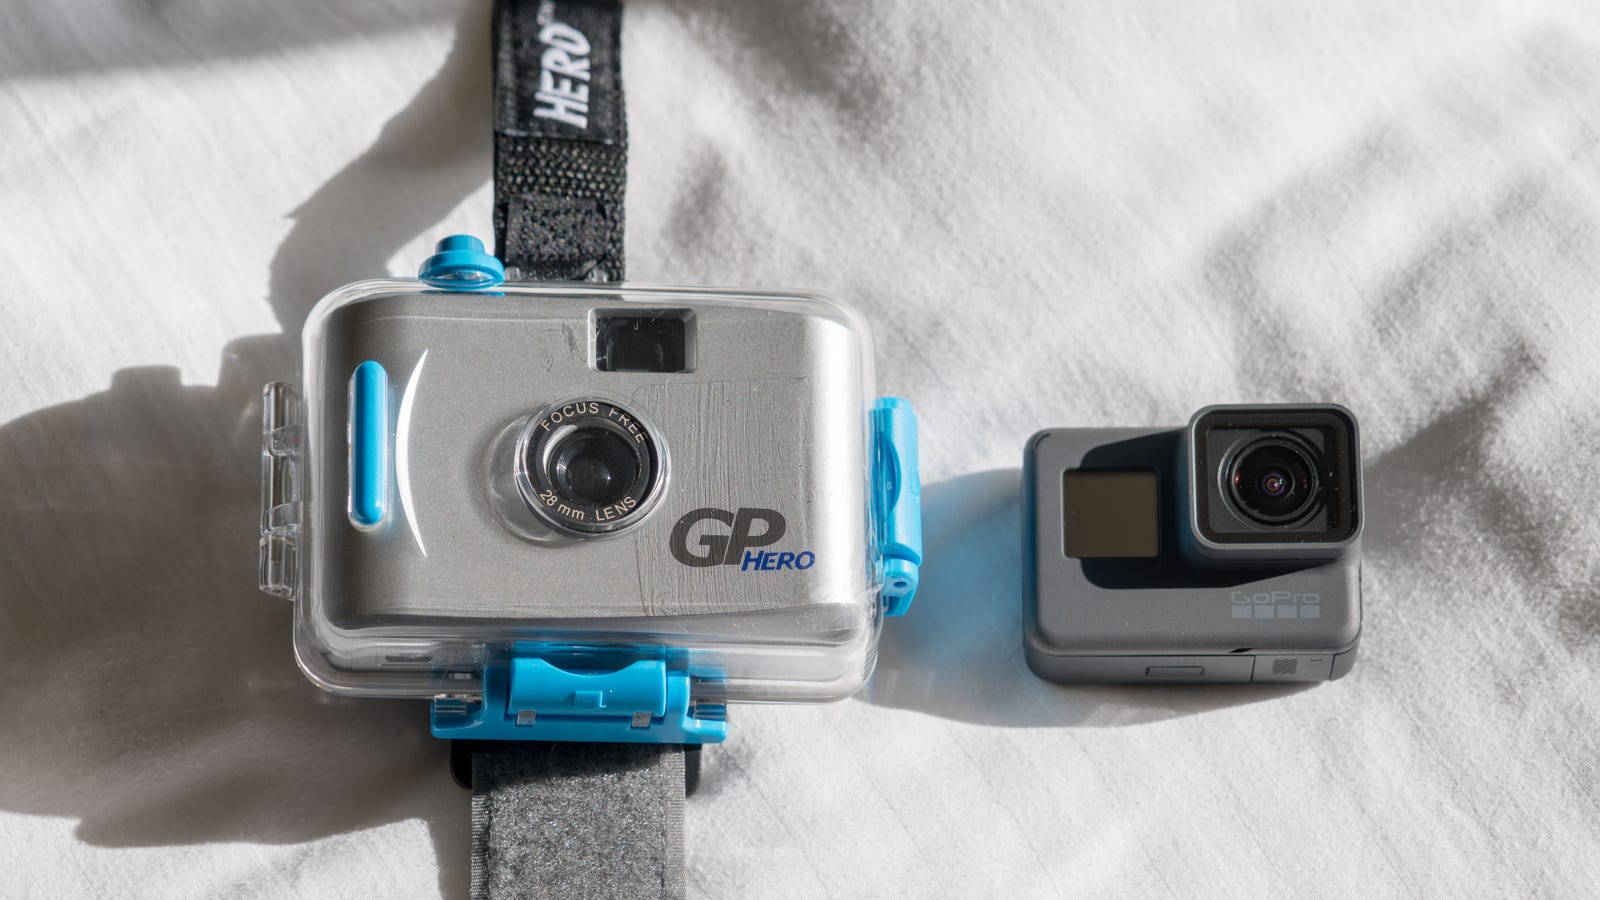 2004 Film Camera Go Pro compared to the Newest GoPro - The Old Photos Didn't Disappoint.